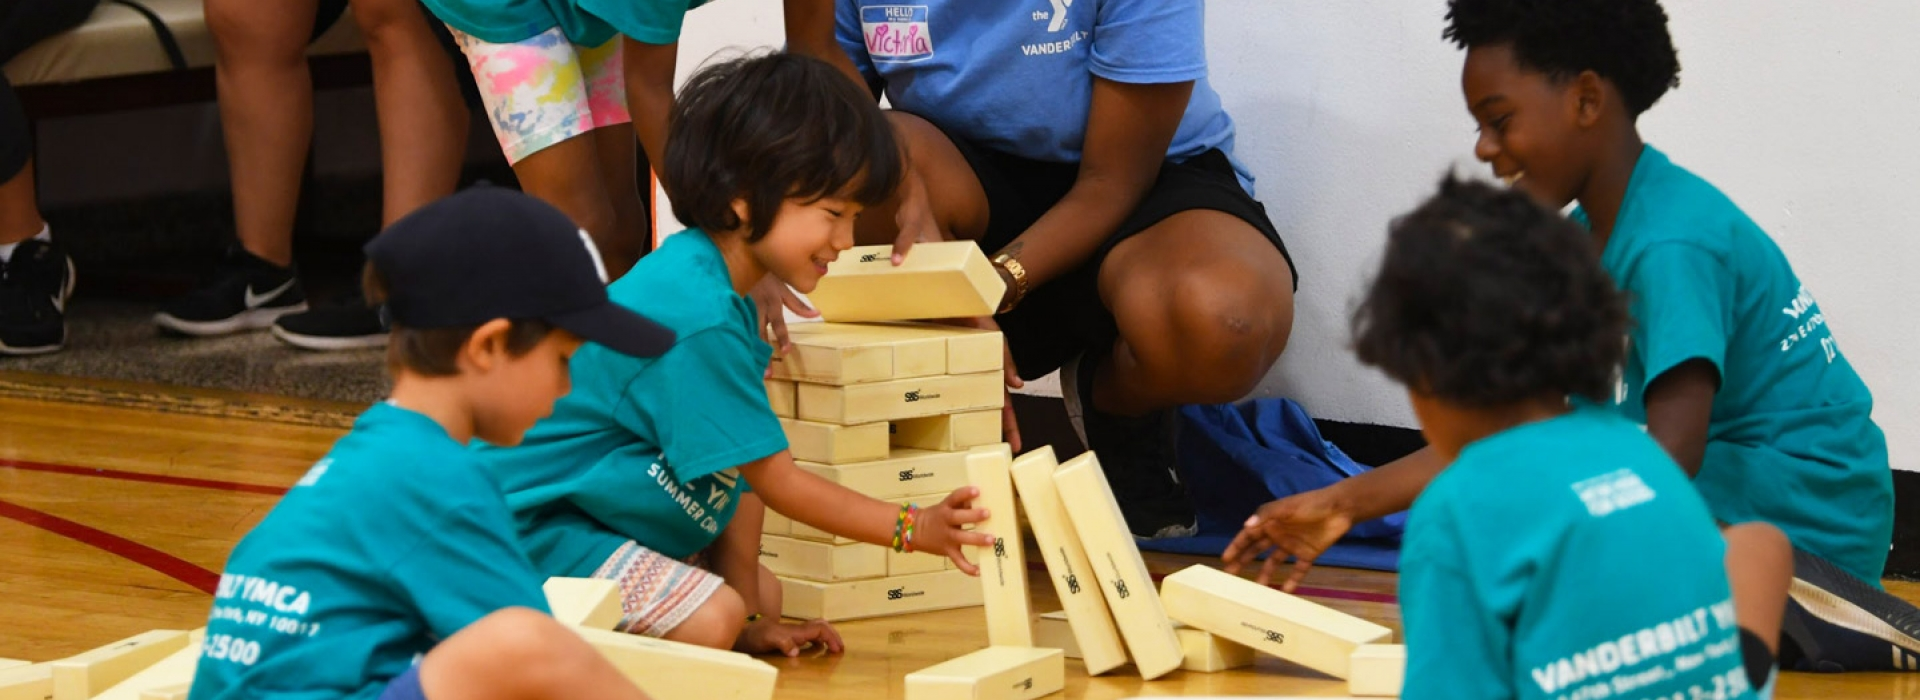 summer day camp for manhattan kids | vanderbilt ymca